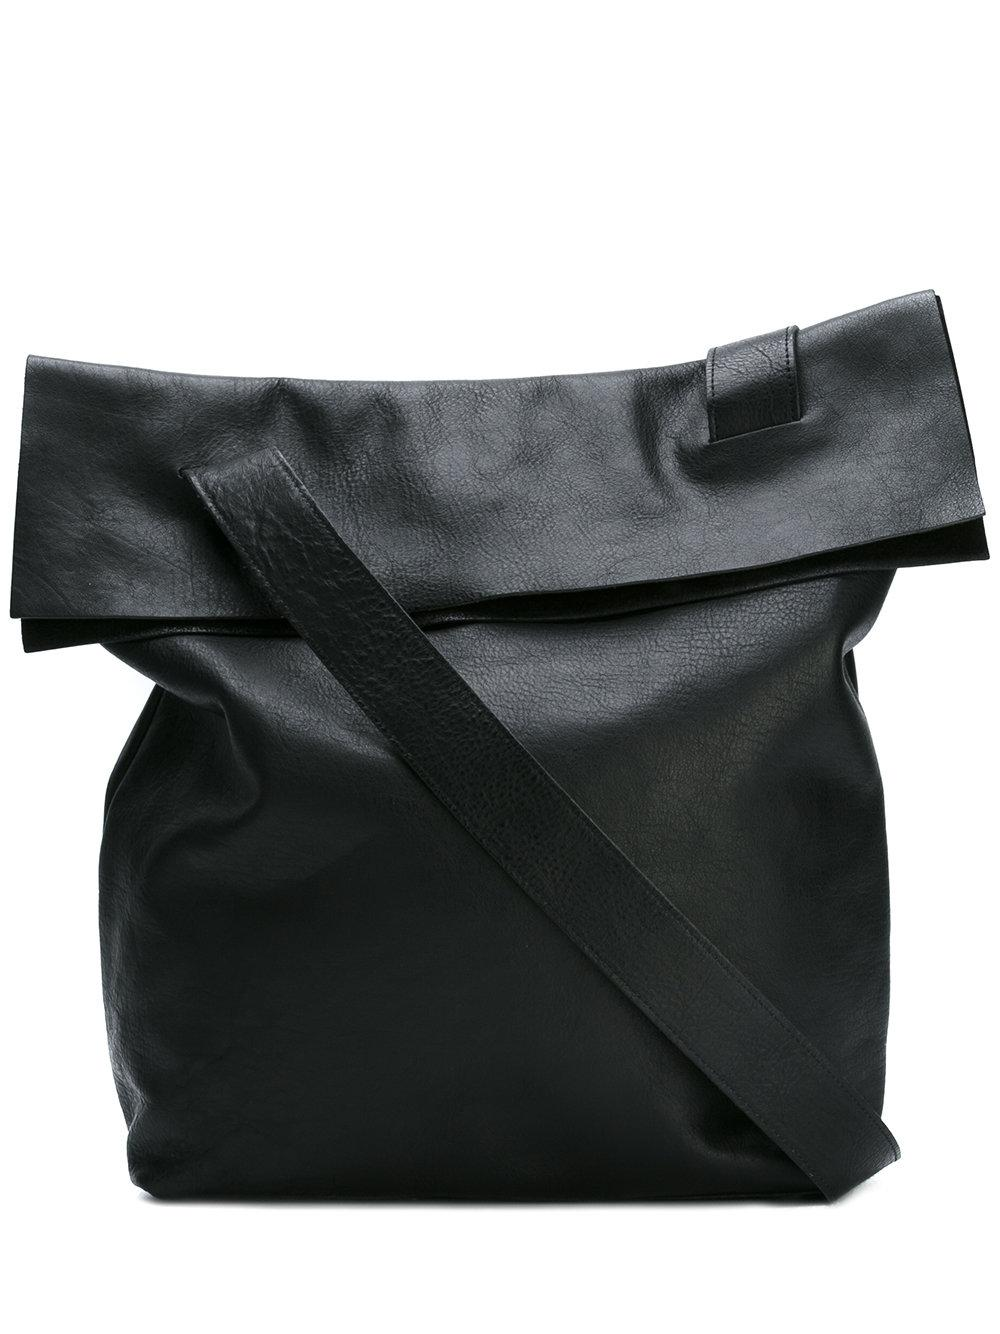 3a4a0cc9d4 Lyst - Yohji Yamamoto 2 Way Shoulder Bag in Black for Men